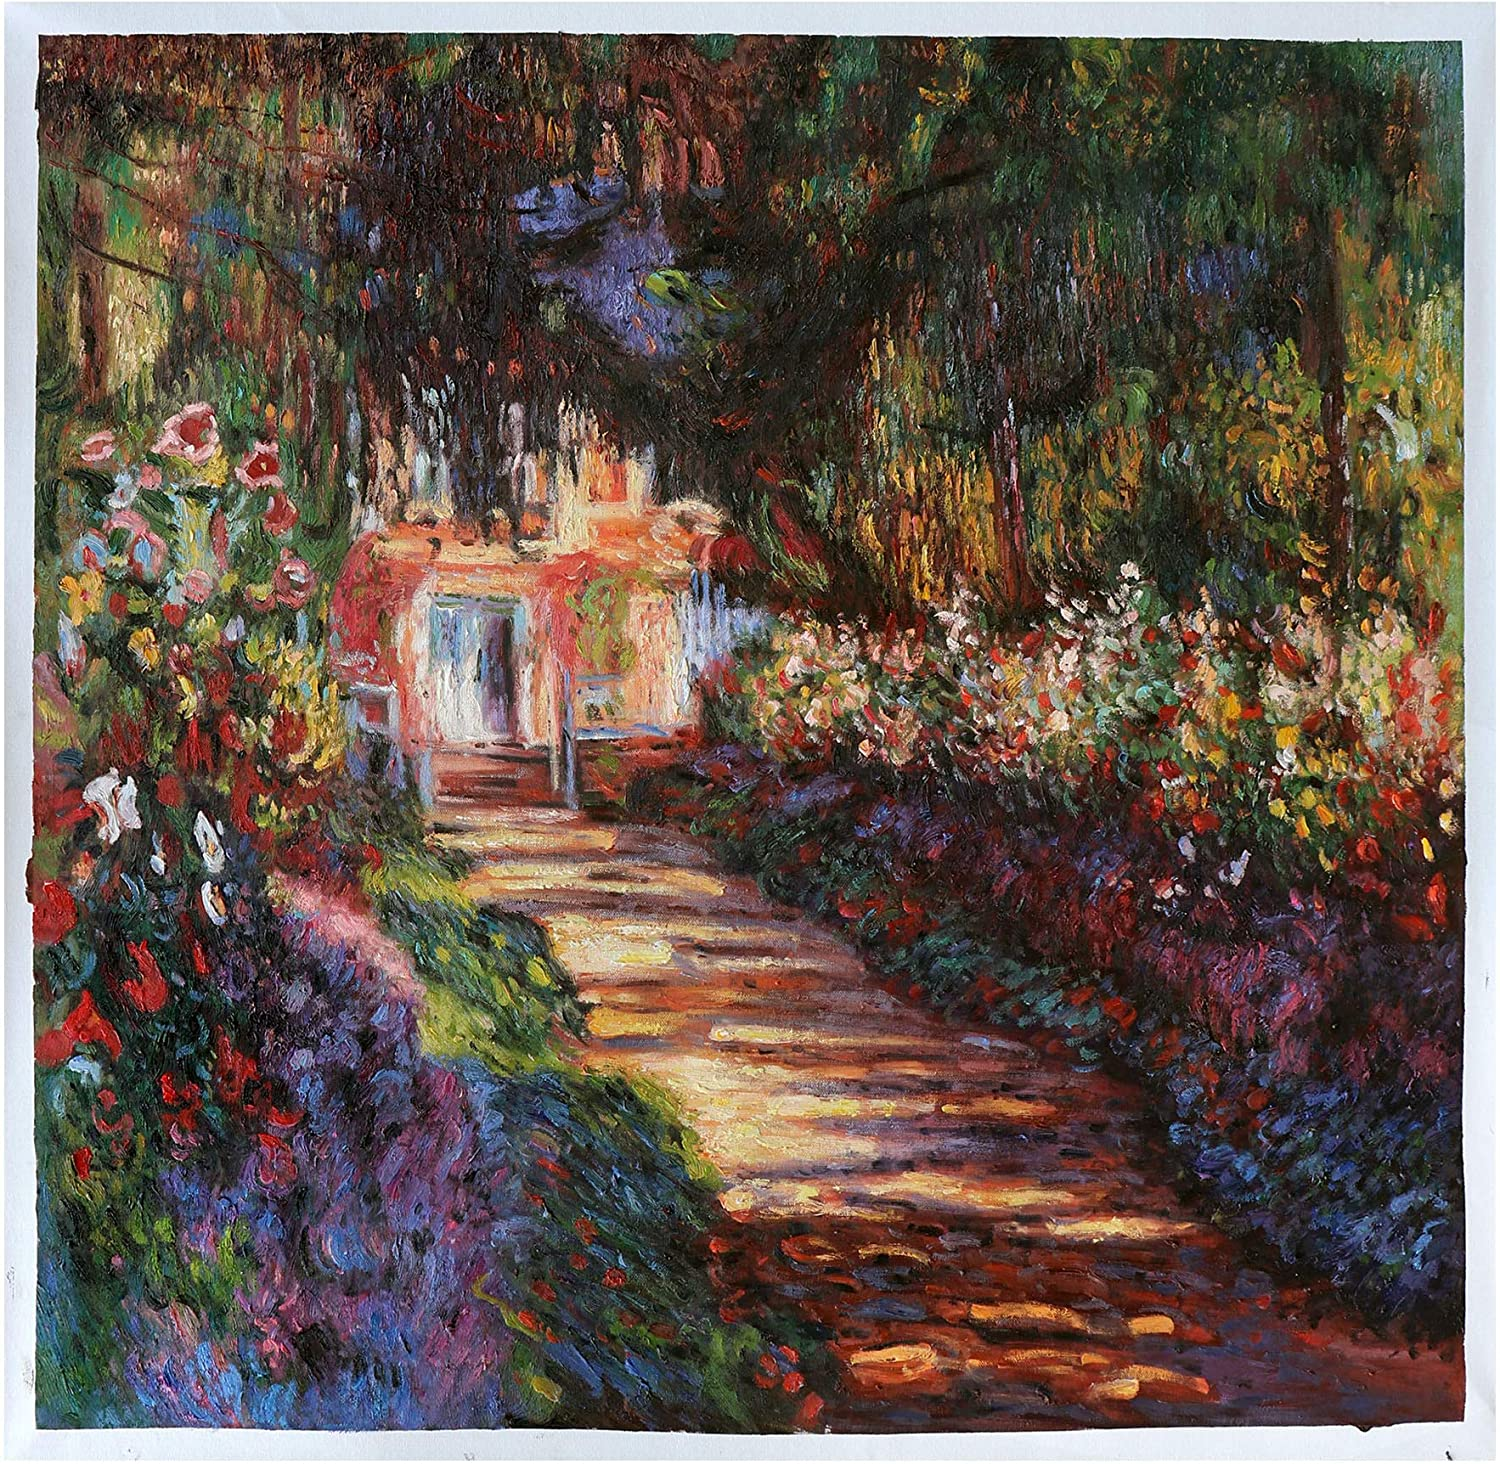 Pathway in Monet's Garden at Giverny - Claude Monet Hand-Painted Oil Painting Reproduction,Blossom Flower Garden,Living Room Large Wall Art (35.3 x 36.4 inches)